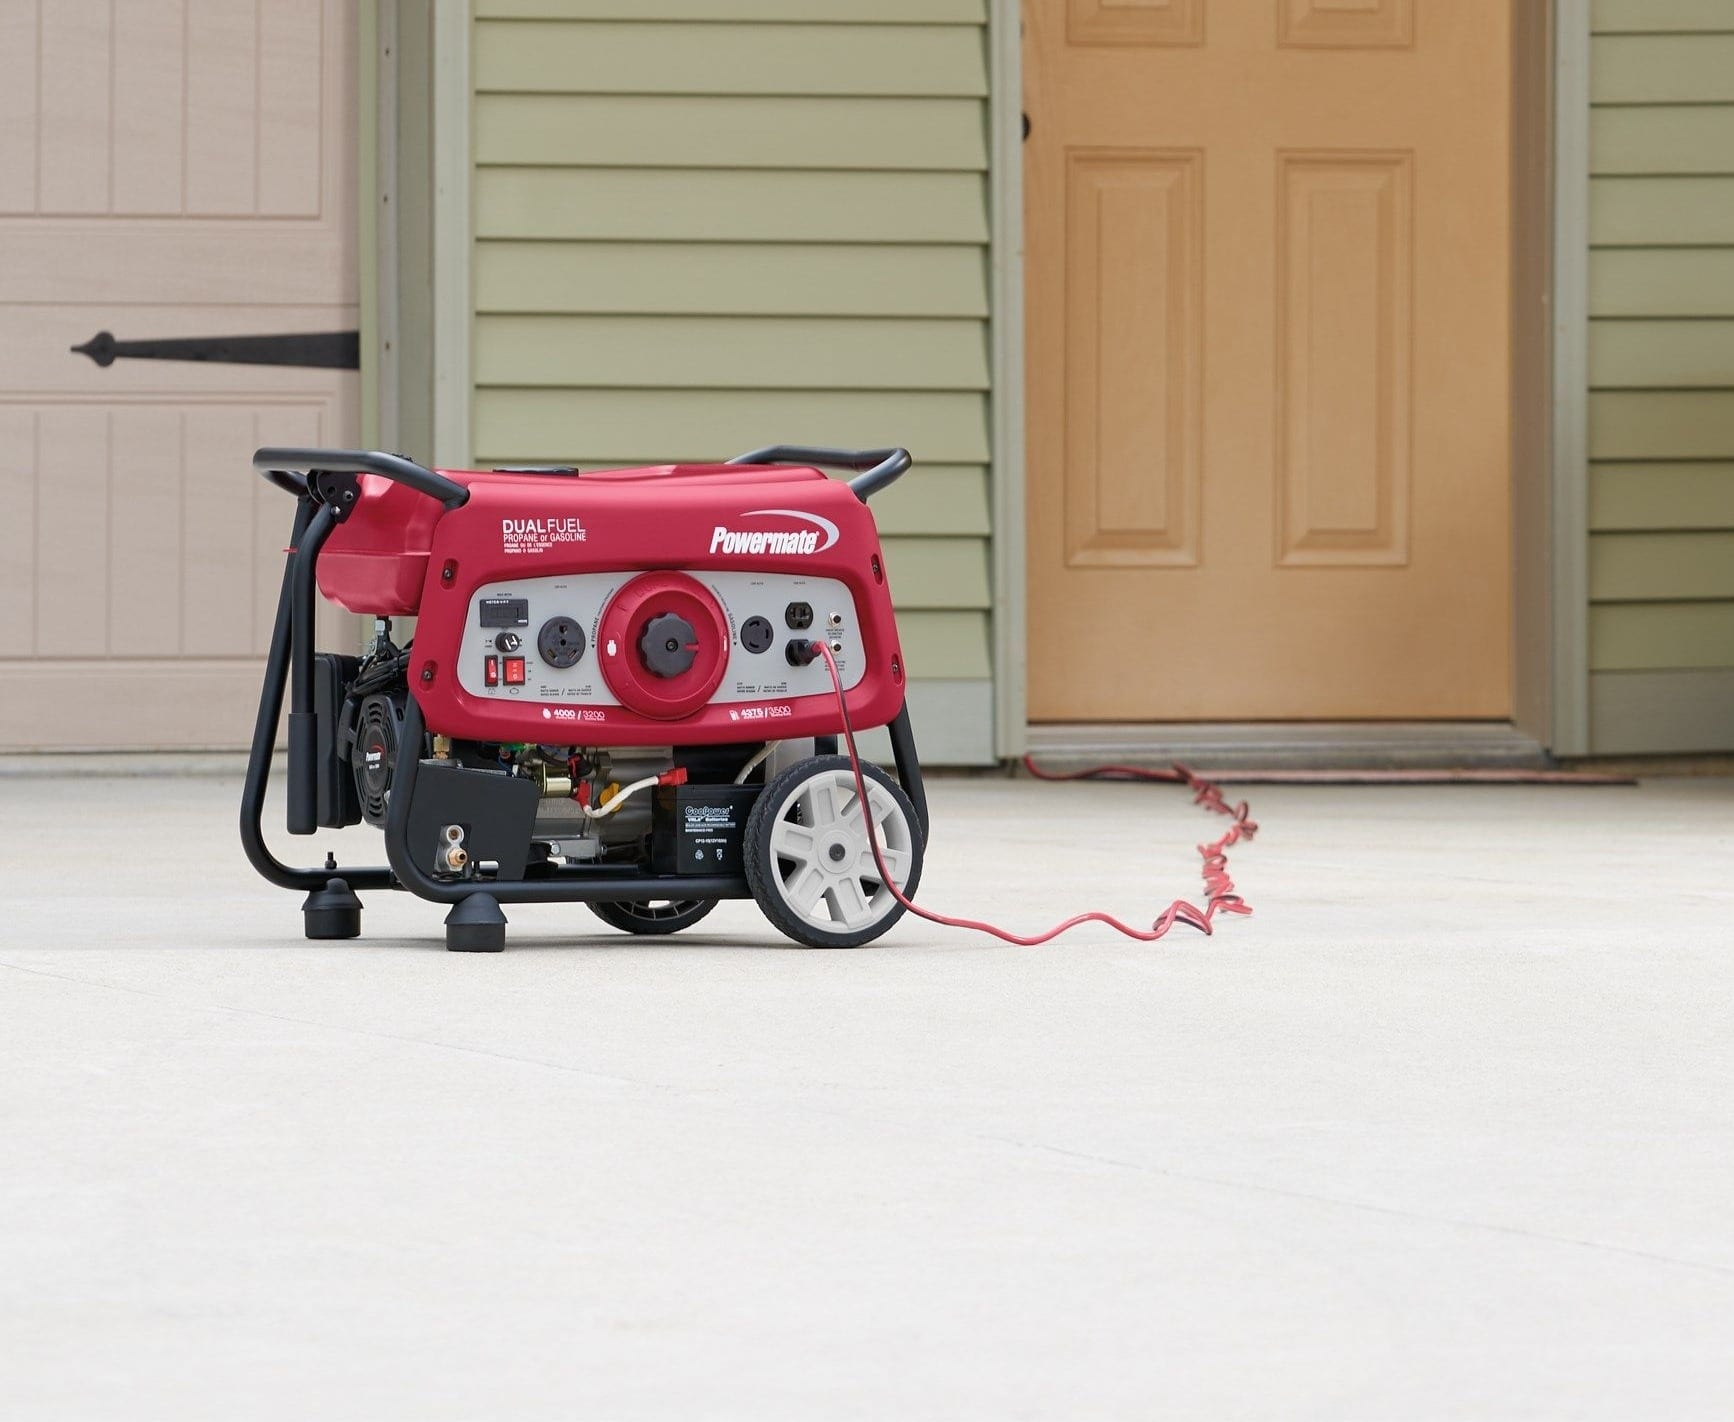 Powermate Dual Fuel 3500 Portable Generator